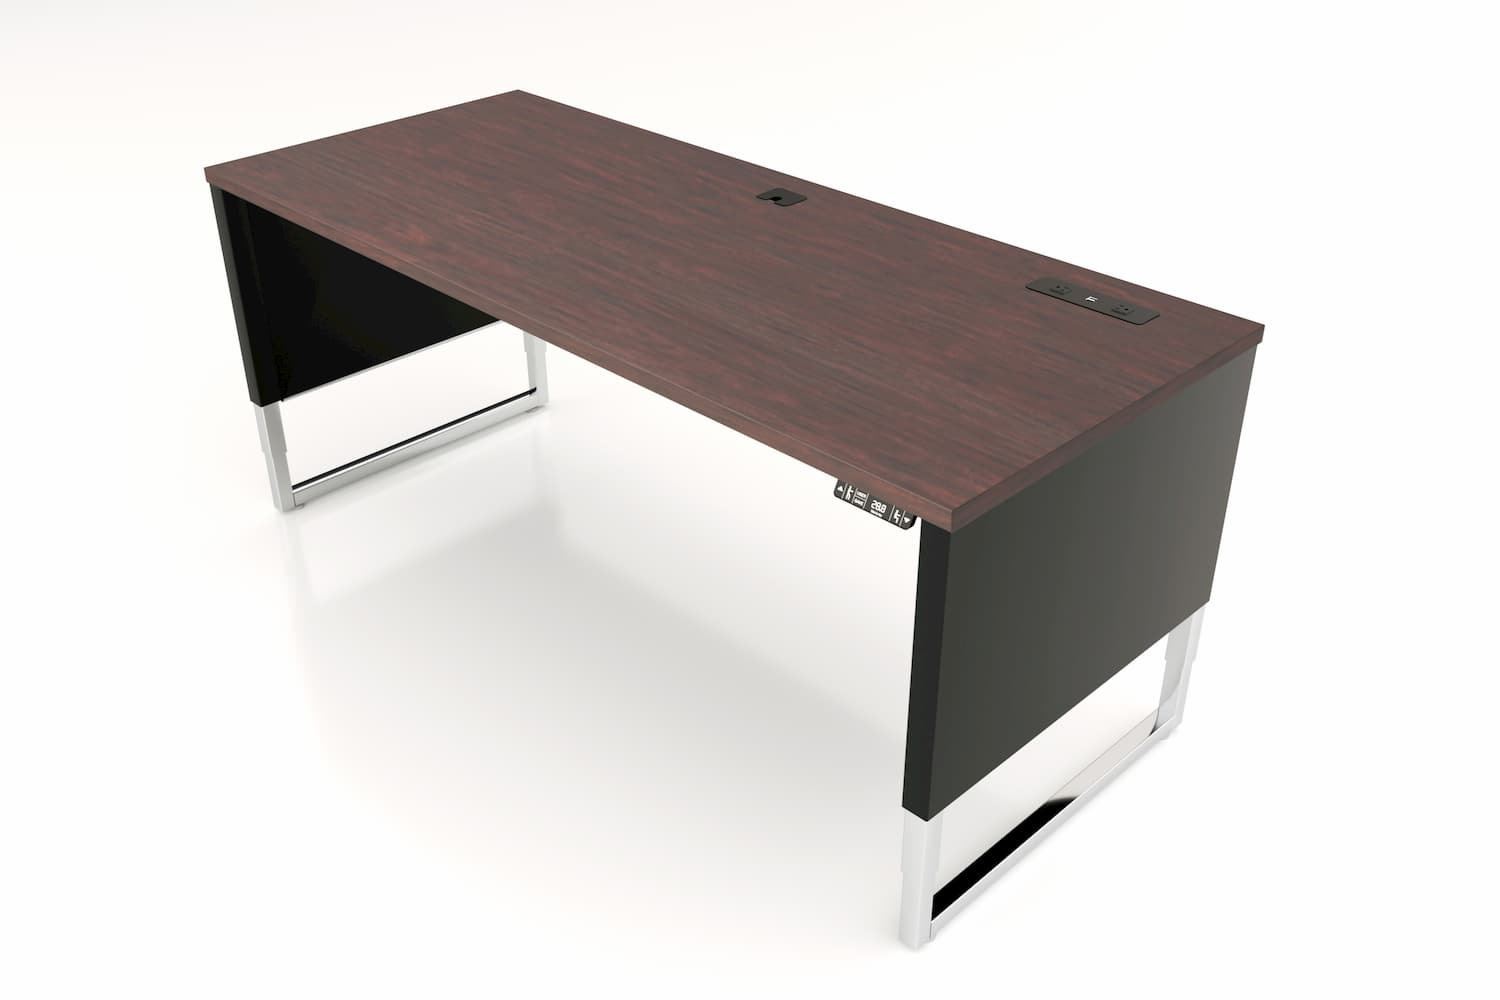 Advent-Desk-ADV-7230-BK-Custom-Top-7